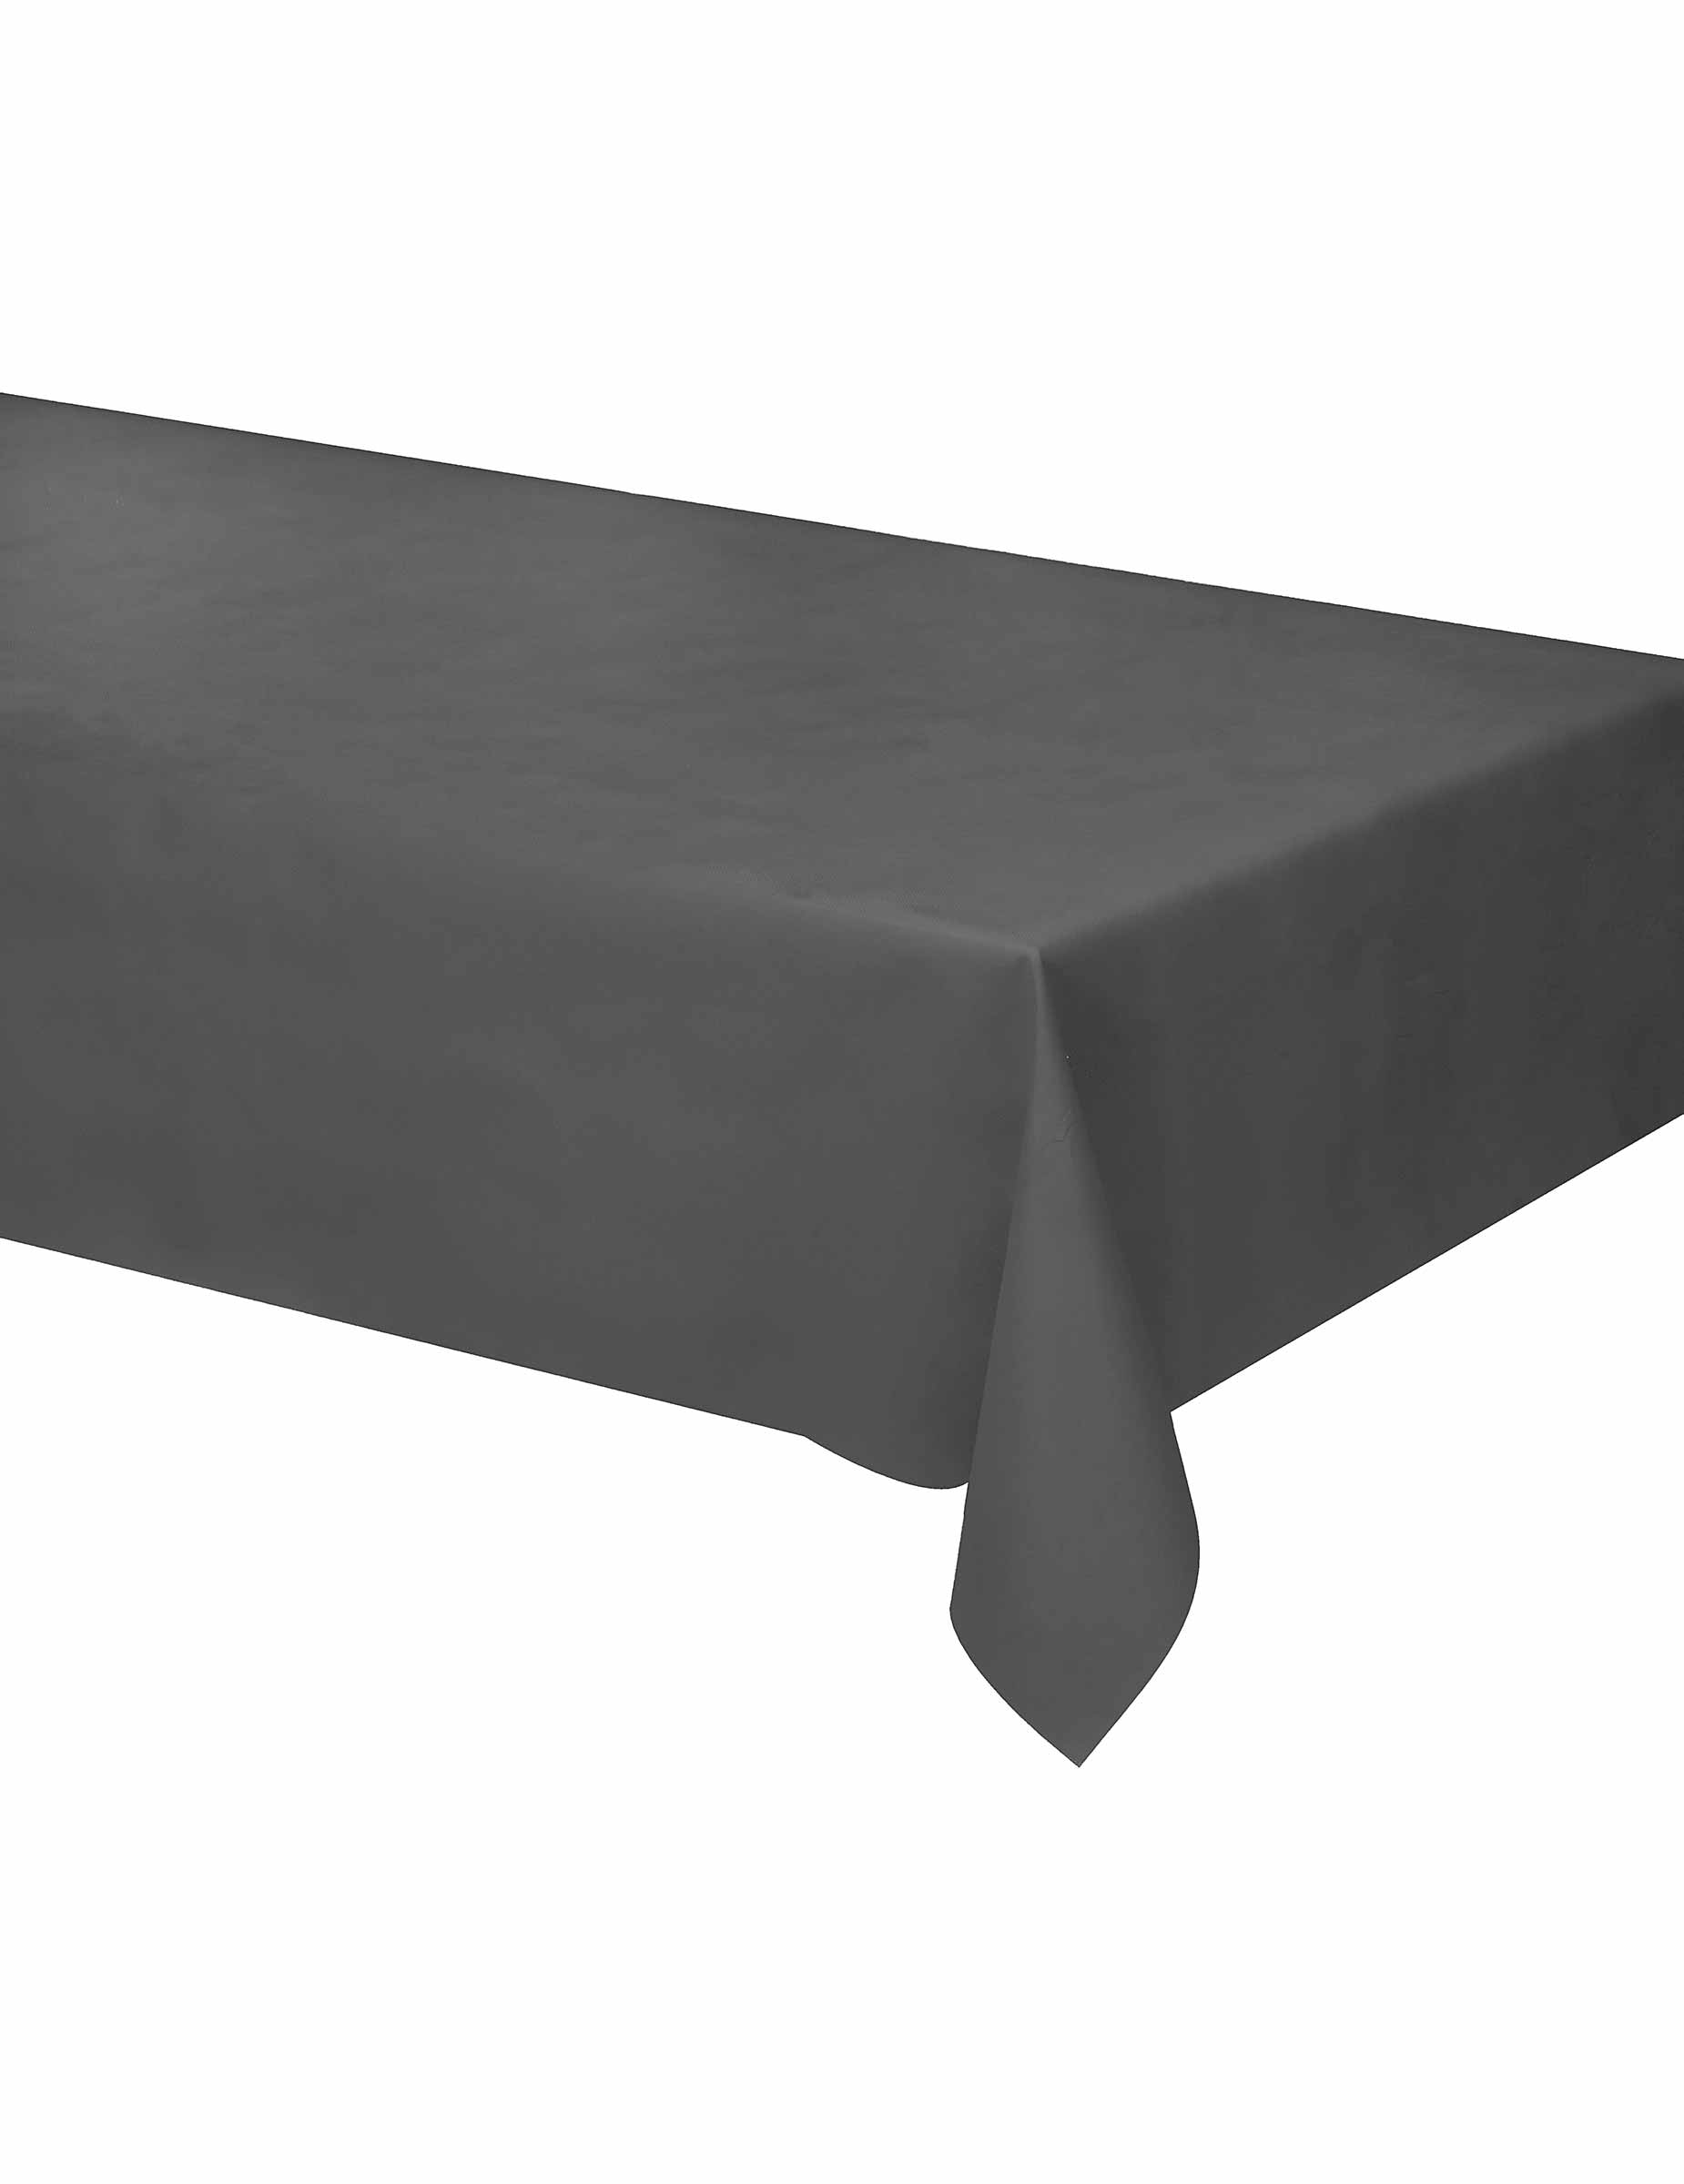 rouleau nappe en intiss gris opaque 1 20 x 10 m d coration anniversaire et f tes th me sur. Black Bedroom Furniture Sets. Home Design Ideas